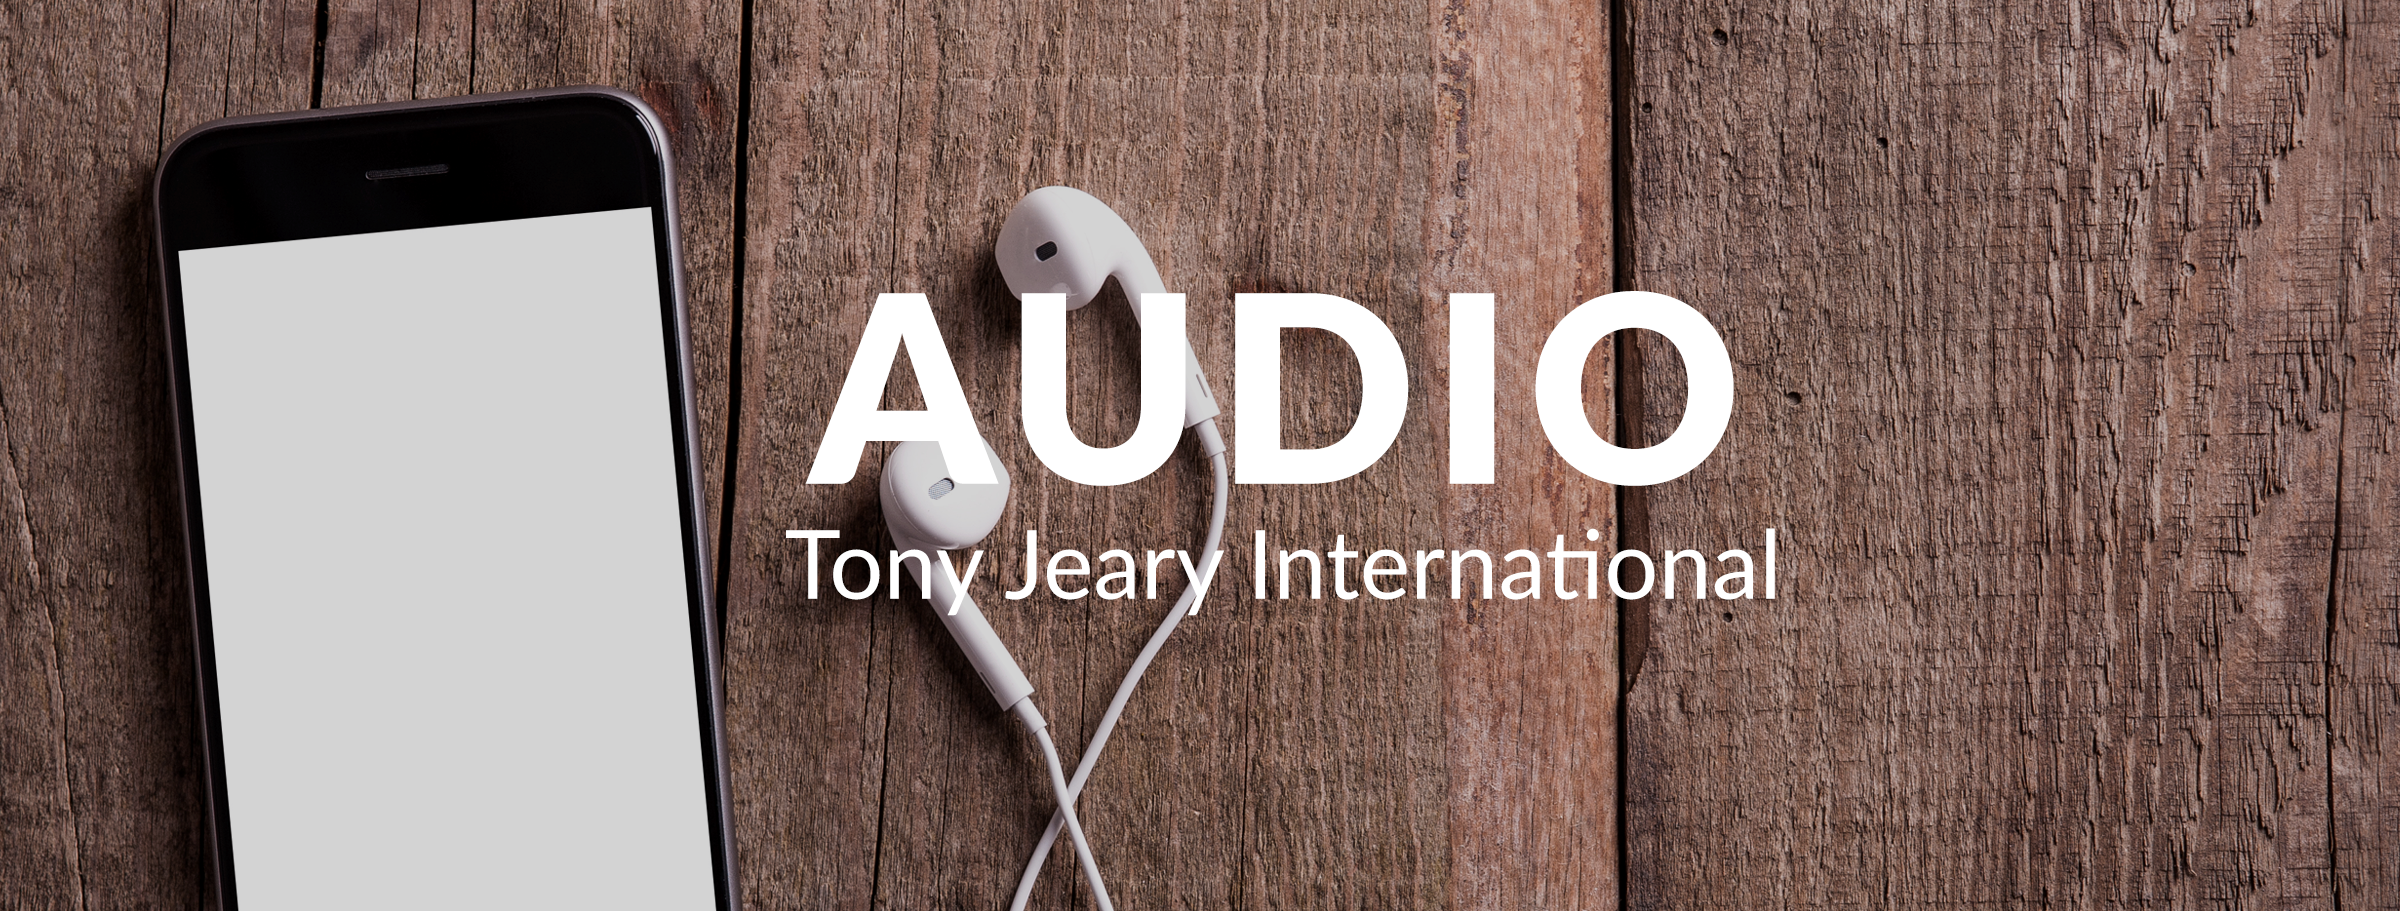 Tony_Audio_Page